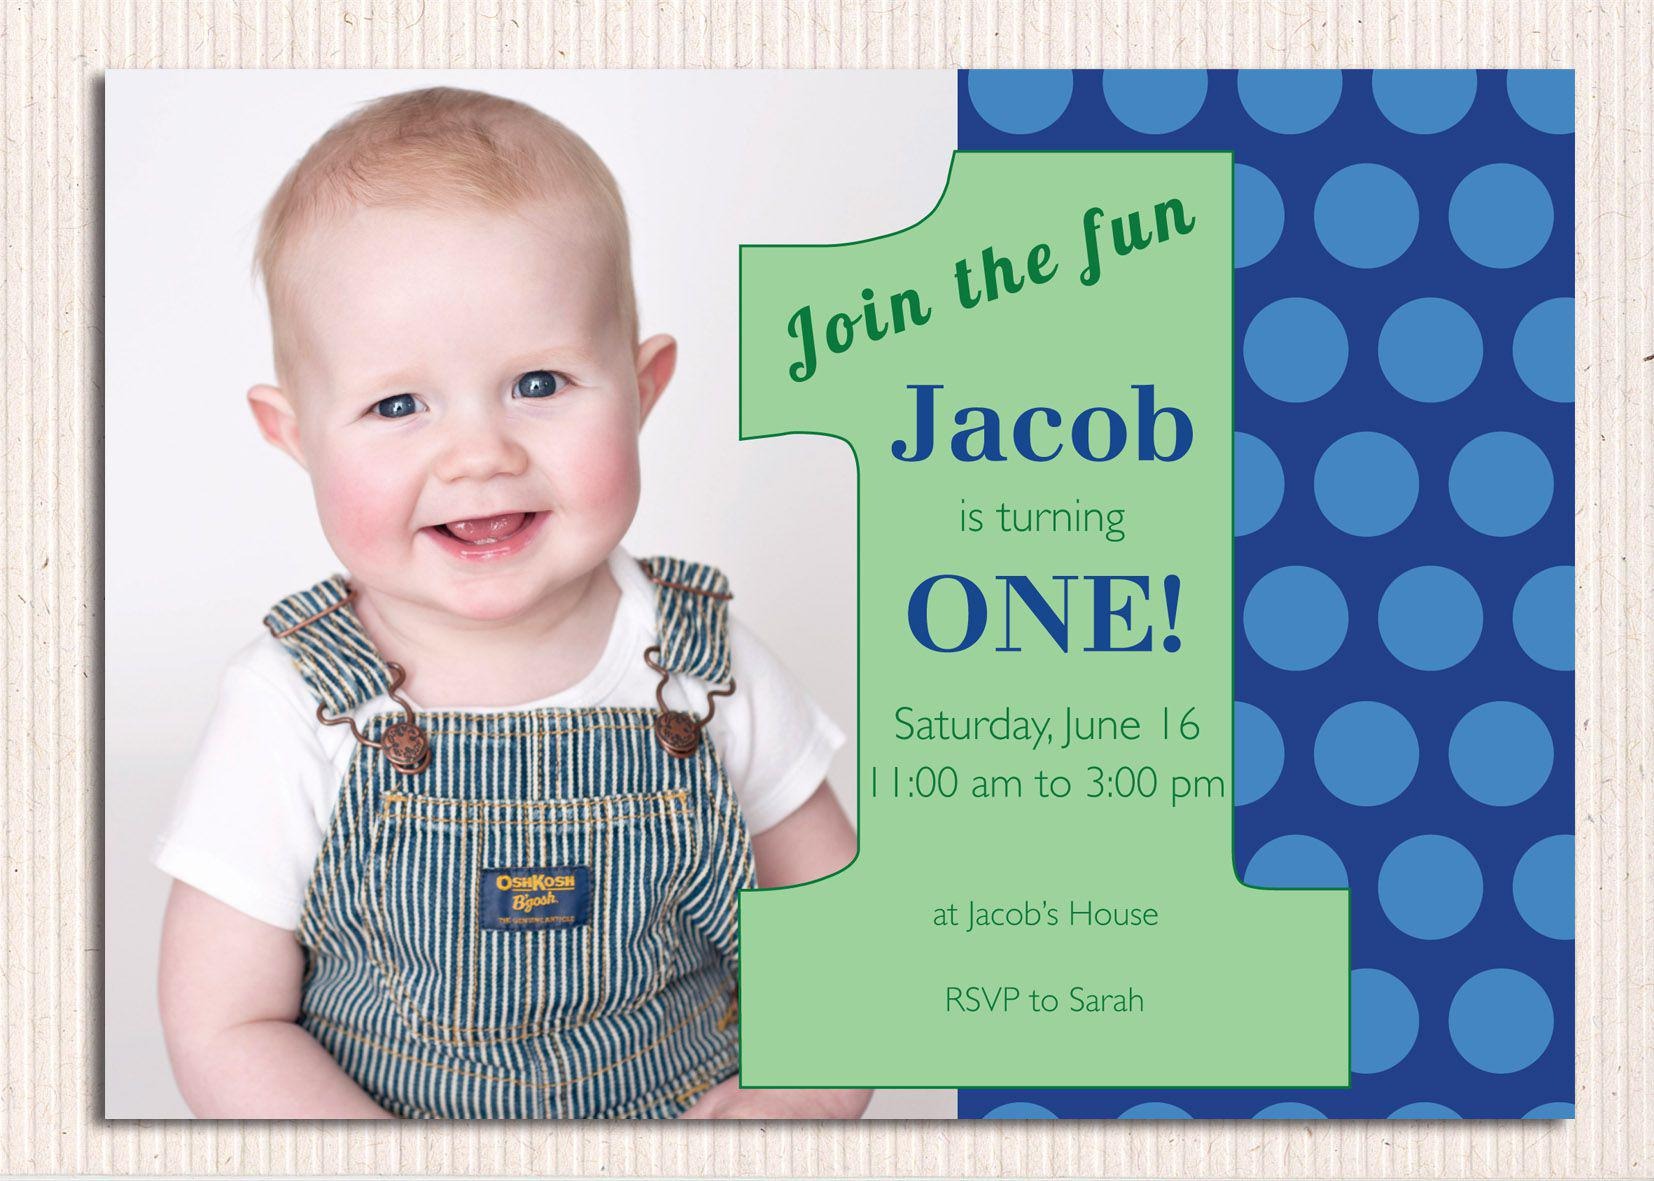 Baby boy birthday invites gidiyedformapolitica baby boy birthday invites filmwisefo Images